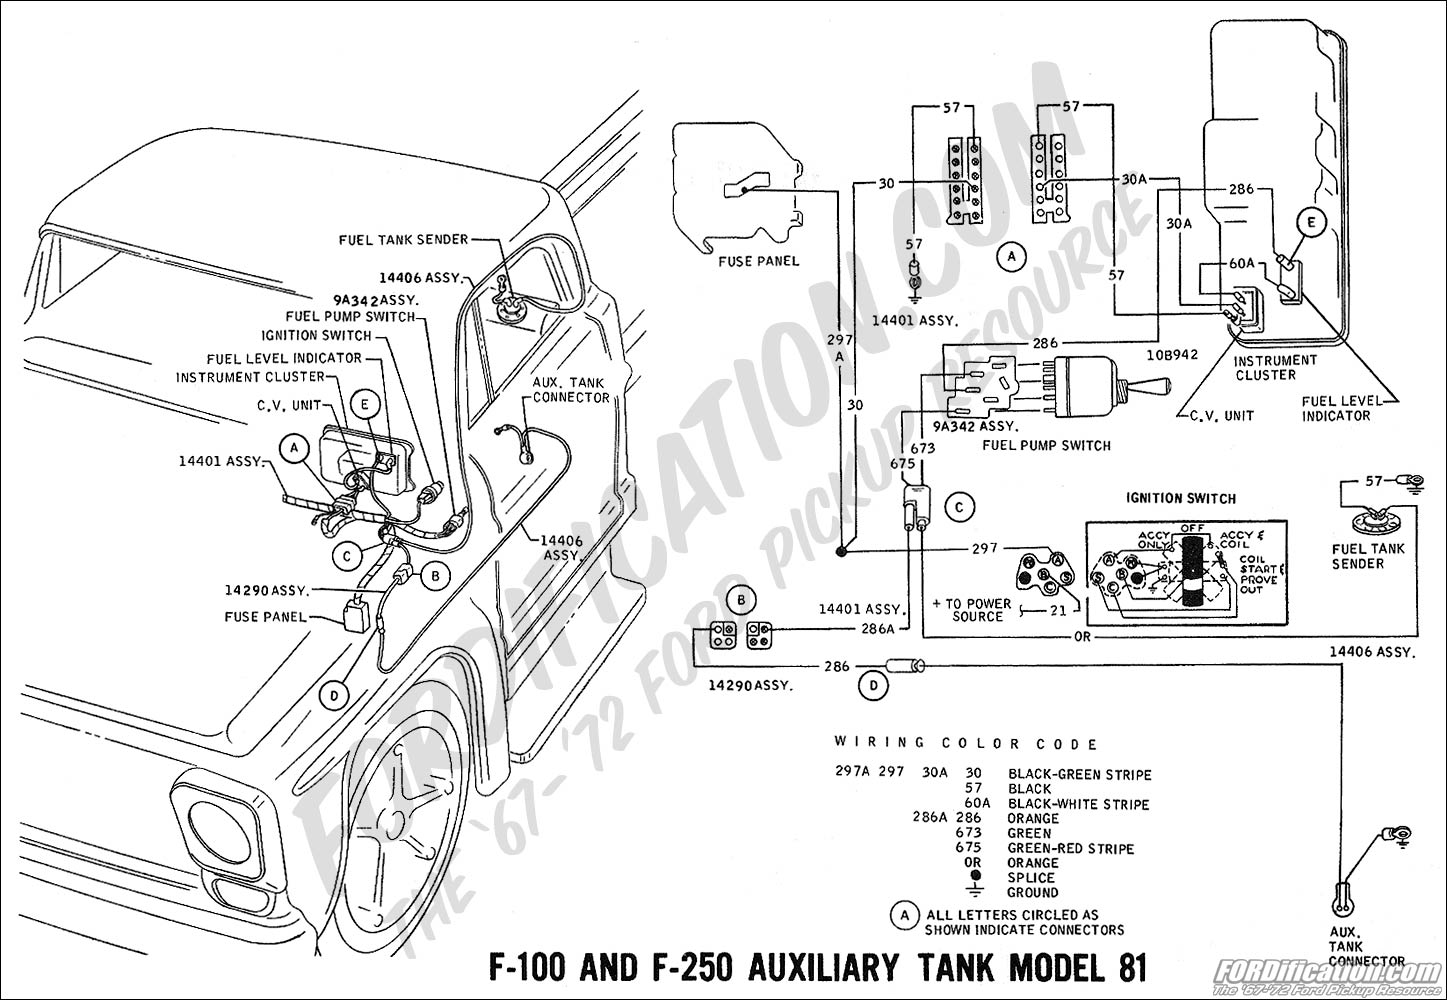 1981 Ford F100 Wiring Diagram Another Blog About 2009 Lincoln Town Car Fuse Box F 100 Free Engine Image F150 Radio